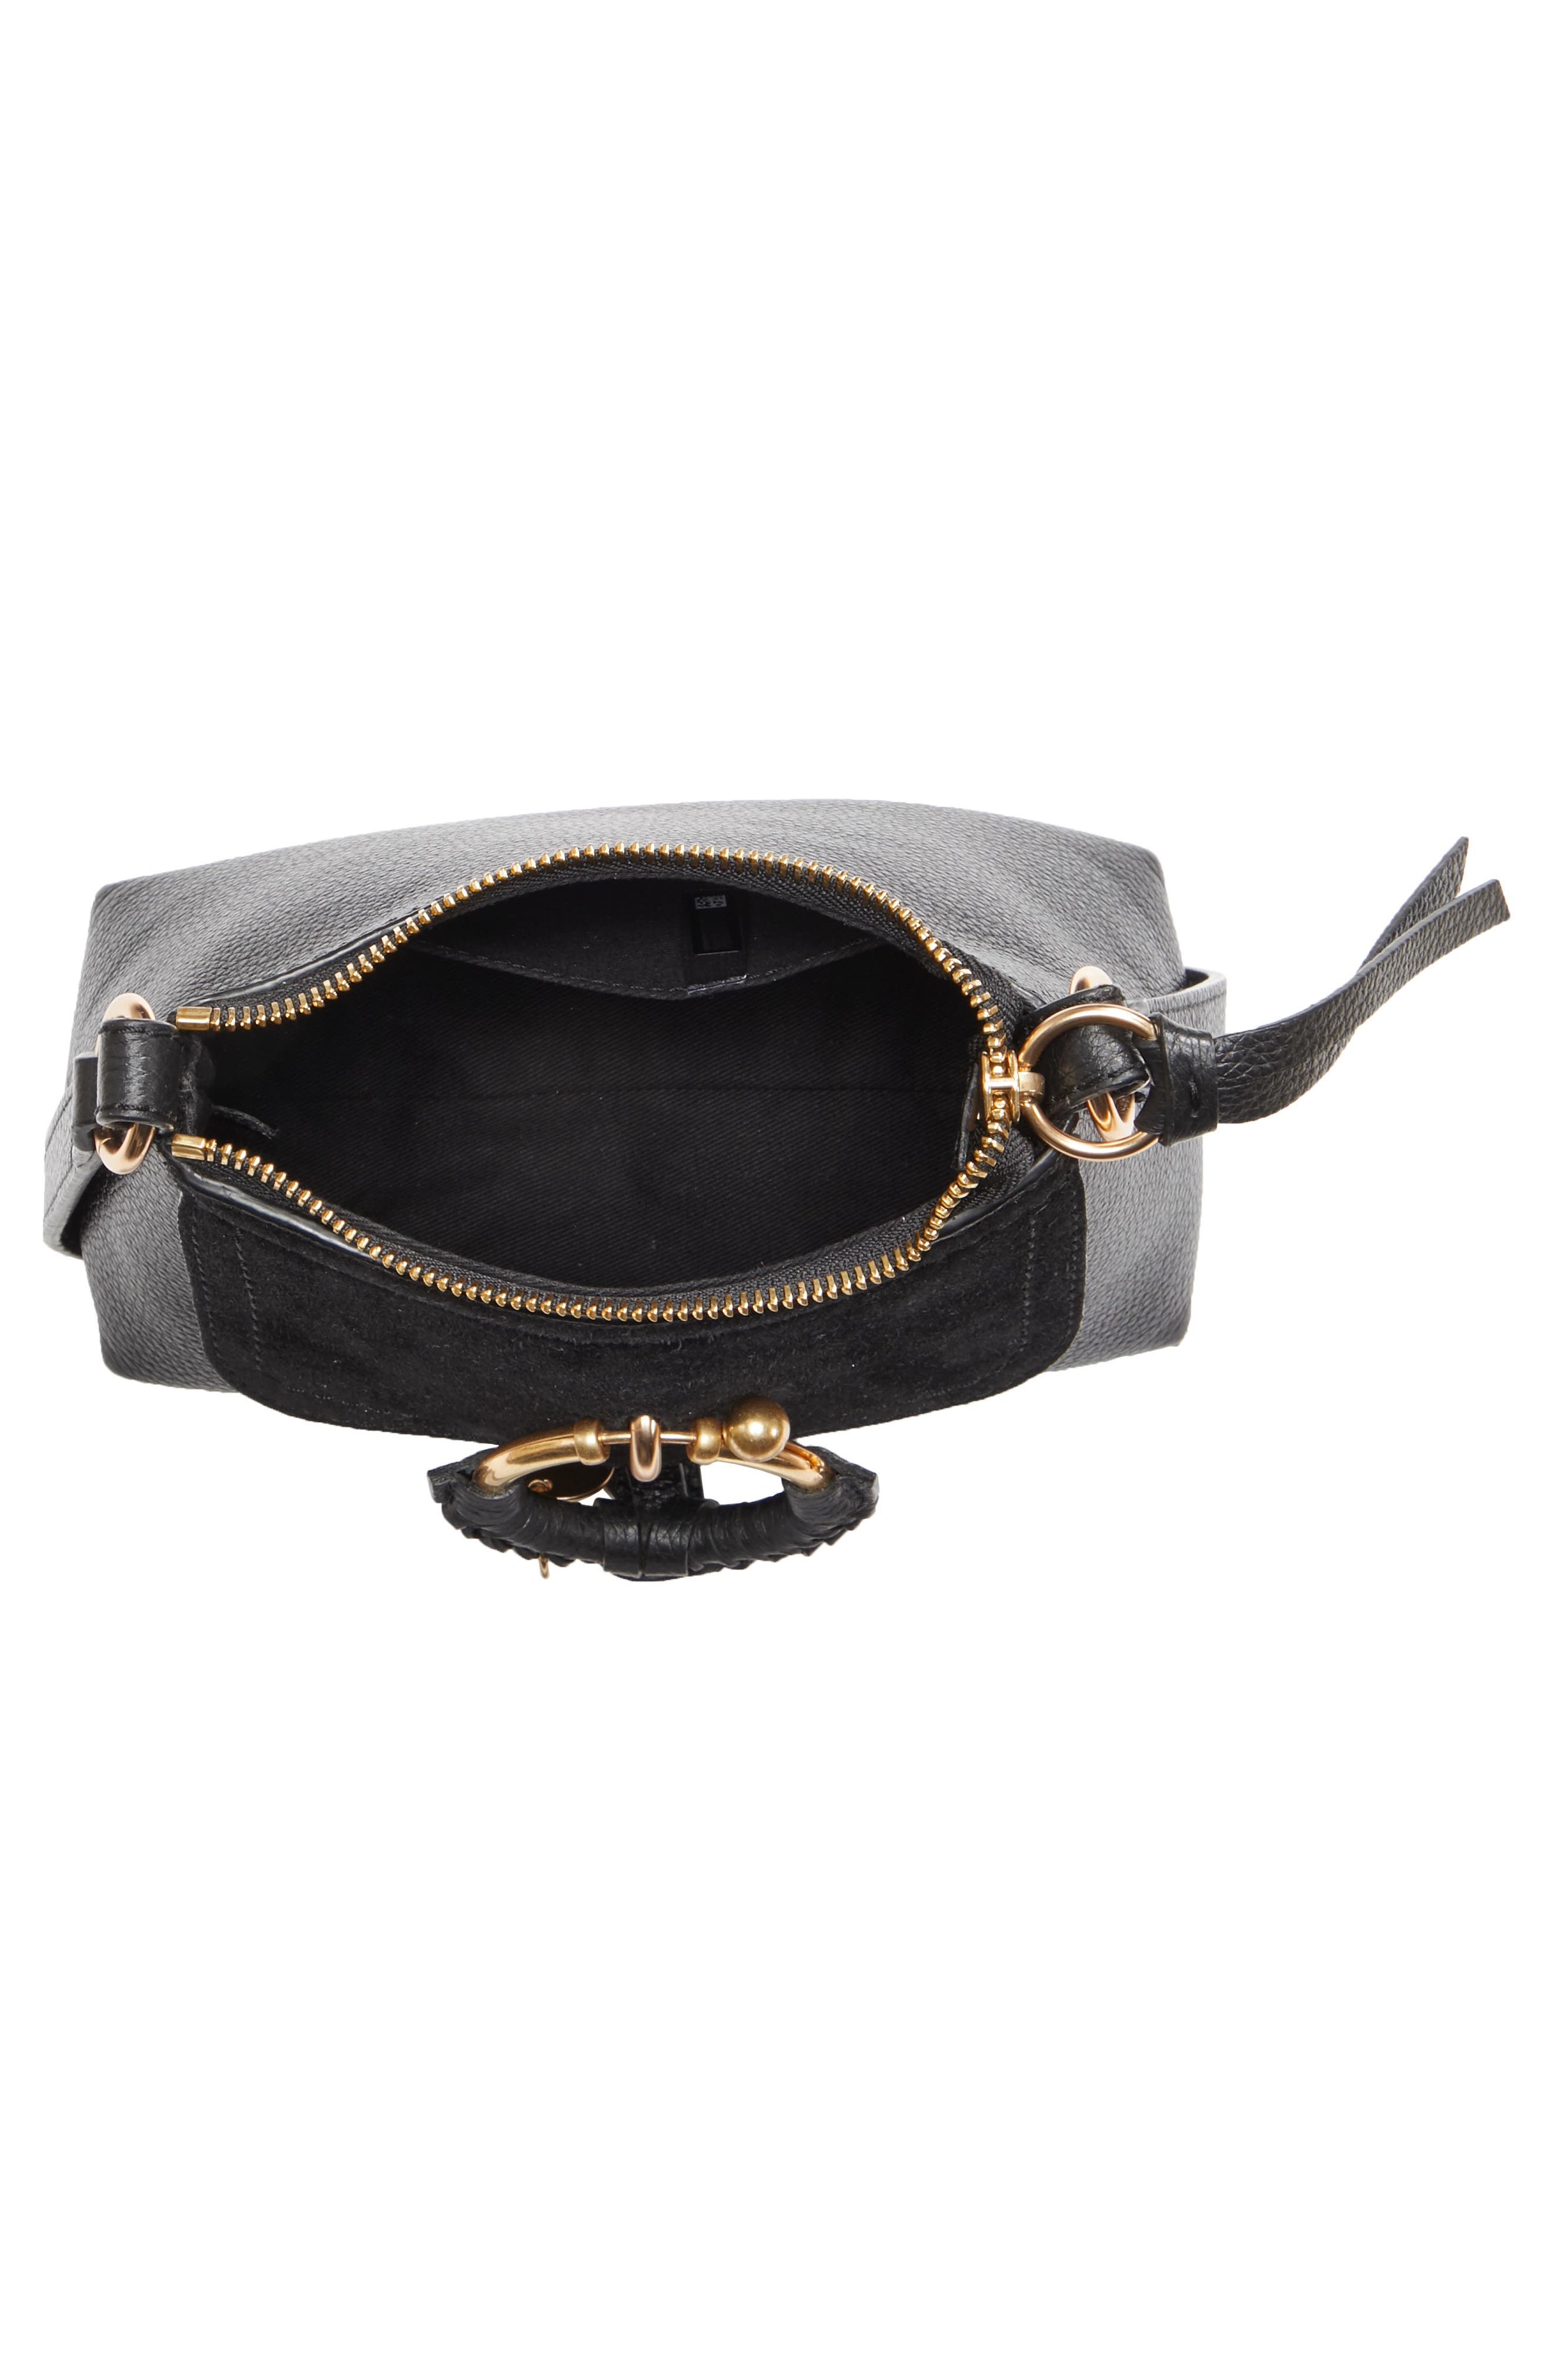 SEE BY CHLOÉ,                             Mini Joan Leather Crossbody Bag,                             Alternate thumbnail 4, color,                             001